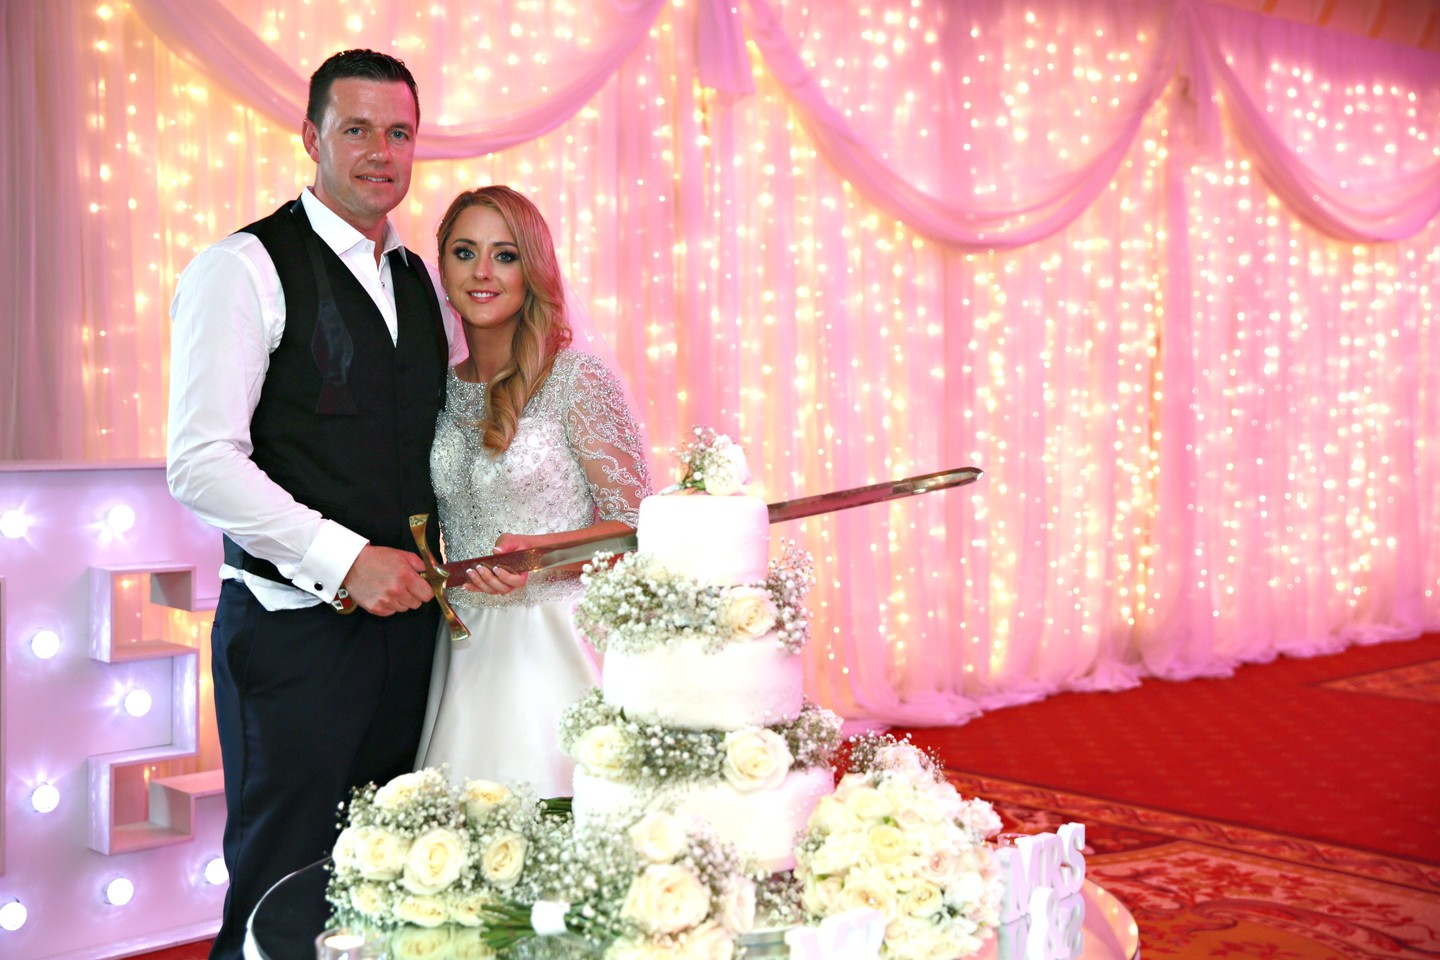 Cannaboe laura and darren cutting their cake at kilronan castle